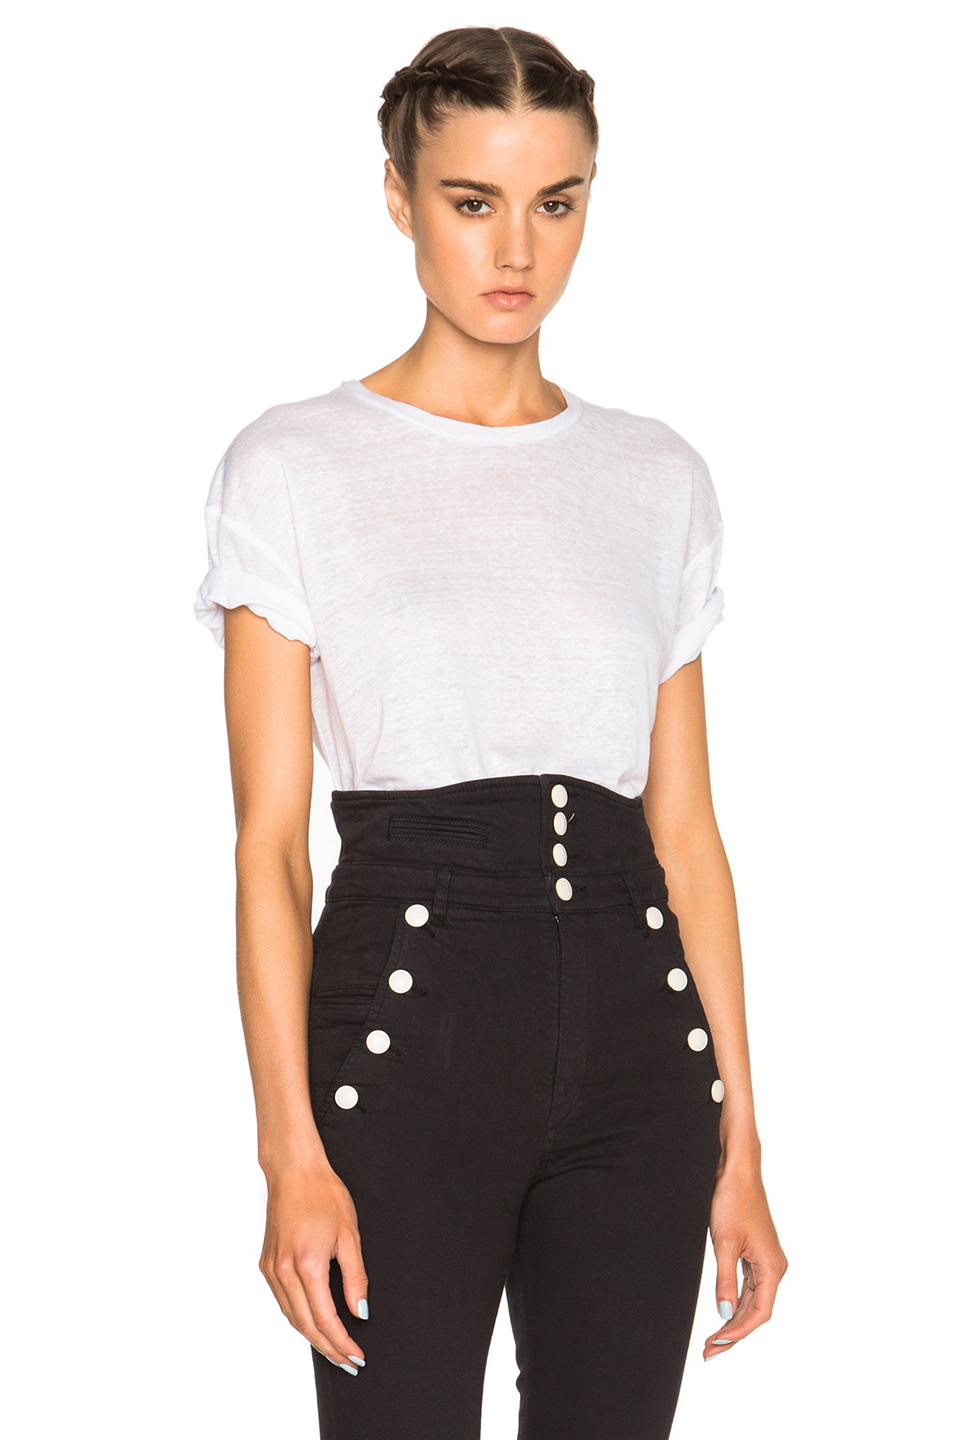 Isabel marant madjo linen tee in black lyst for Isabel marant t shirt sale